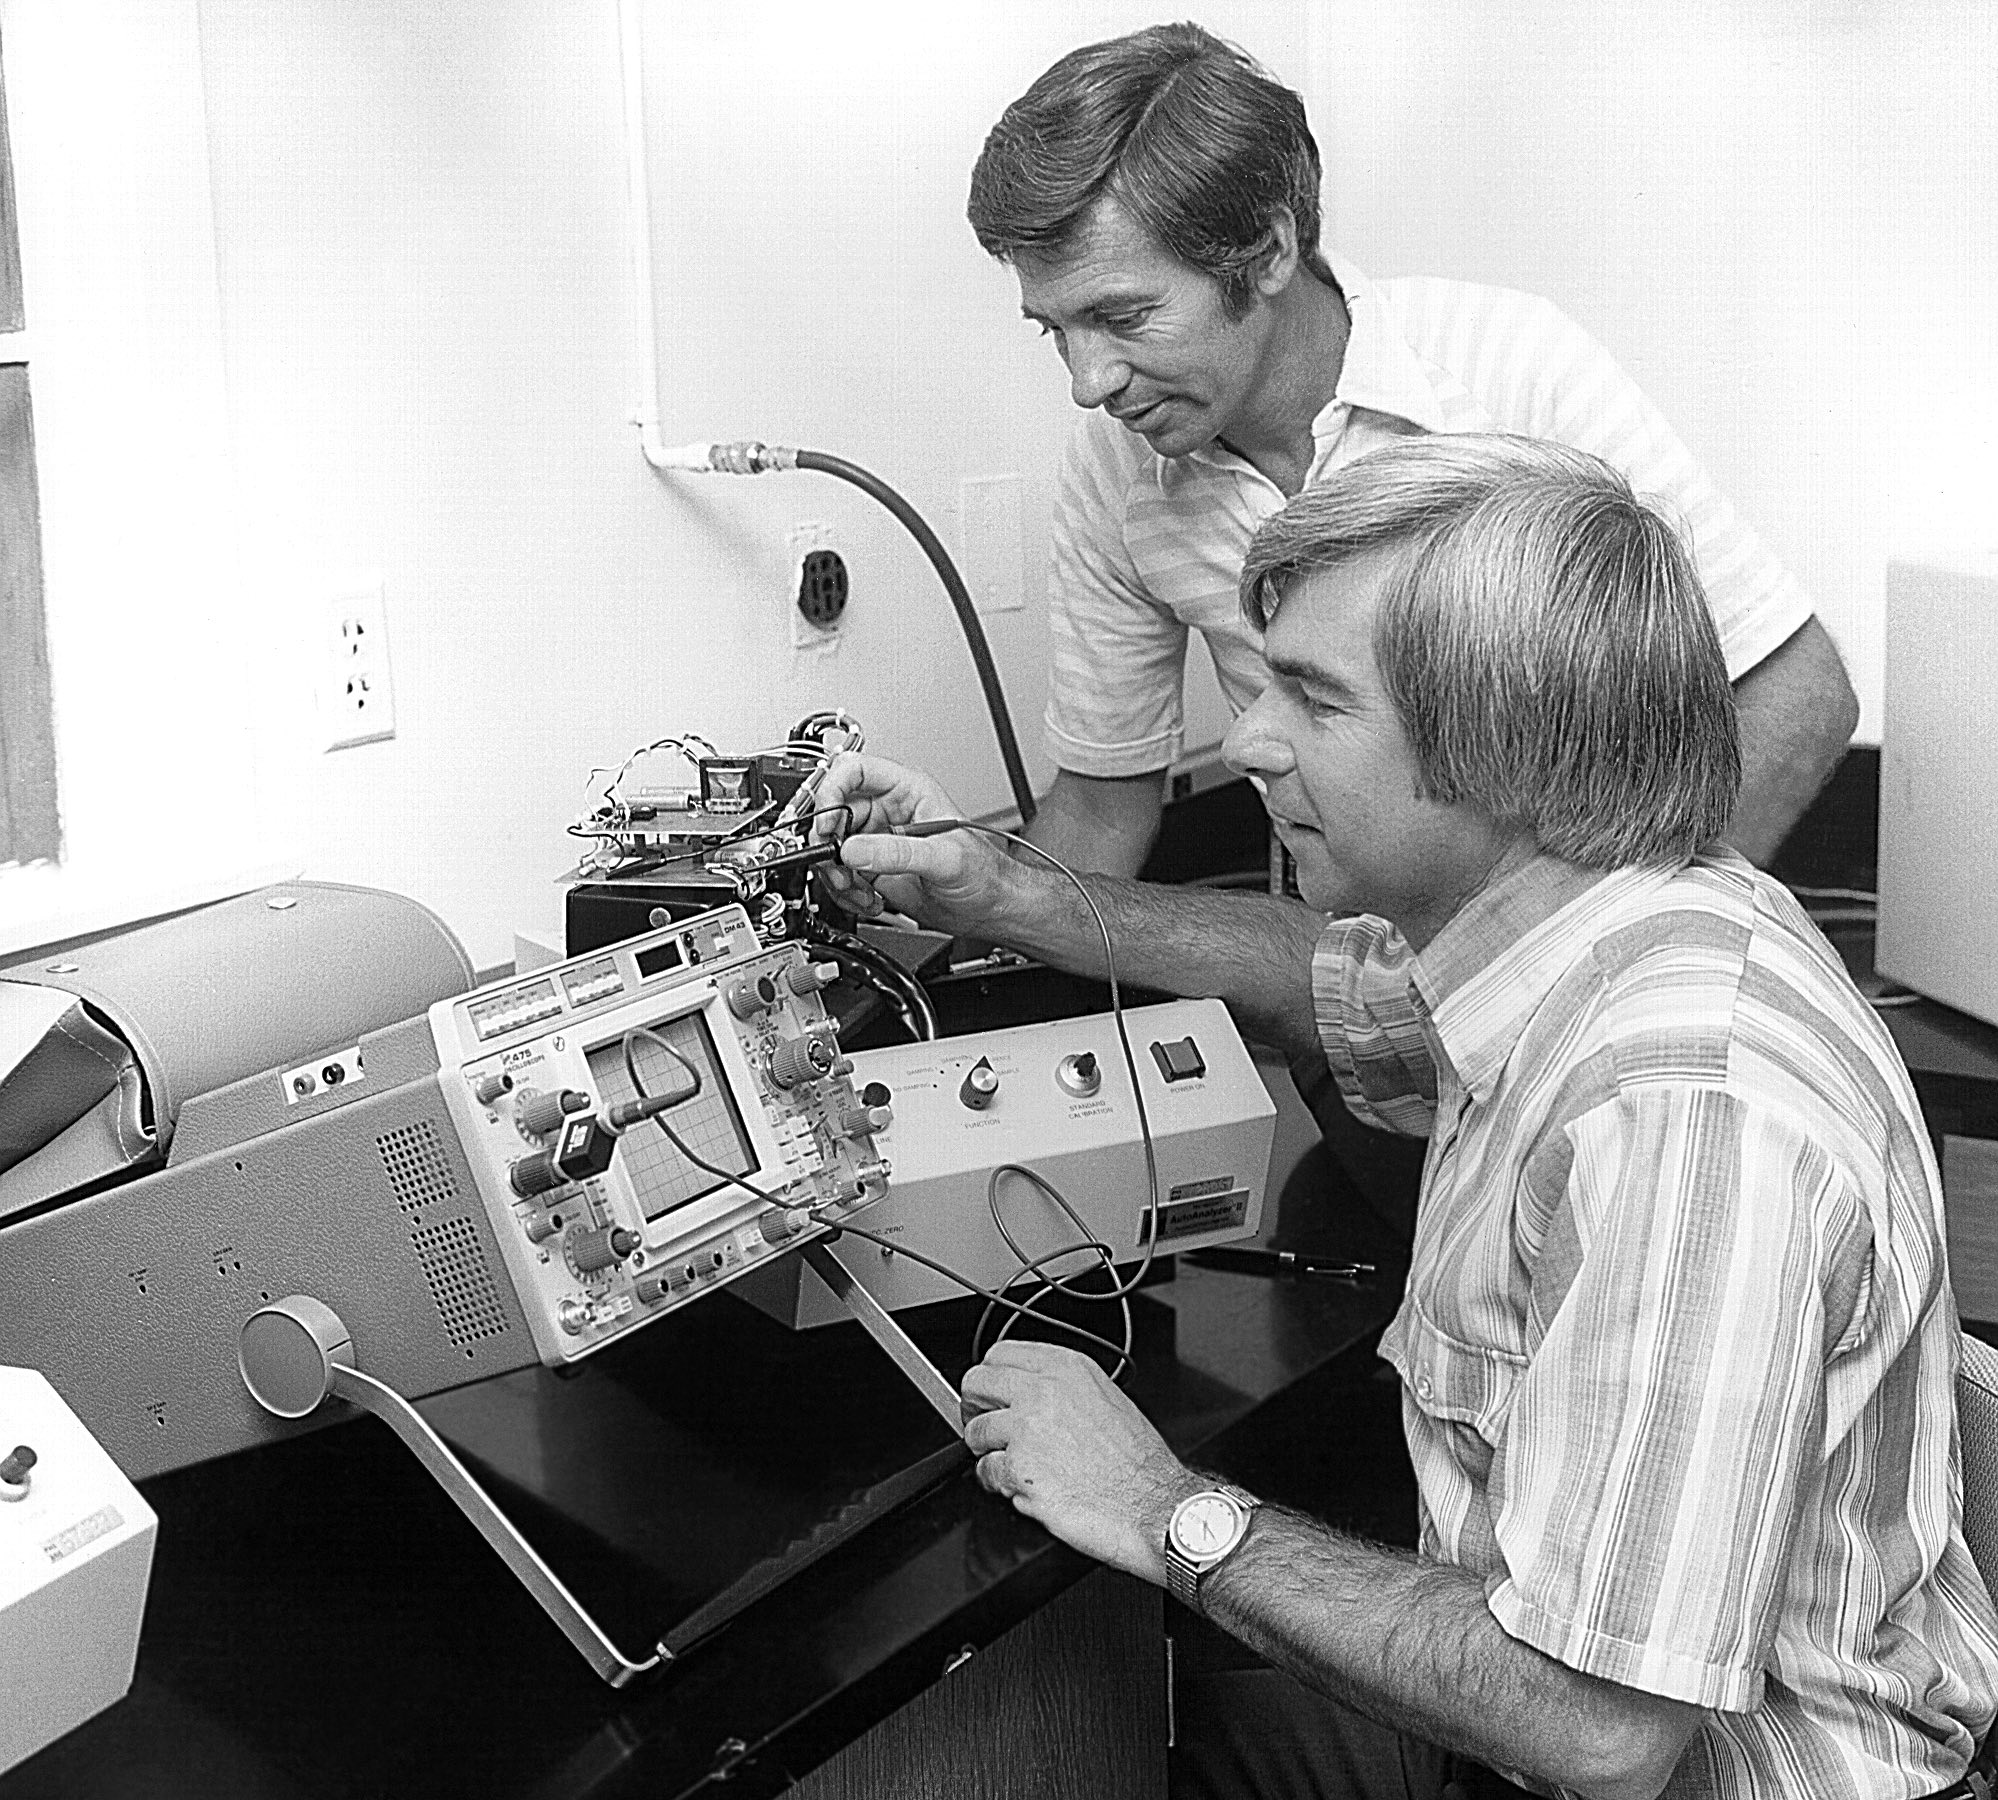 This historic image, depicted these two Centers for Disease Control and Prevention (CDC) laboratory technicians, who were at work in a CDC laboratory.